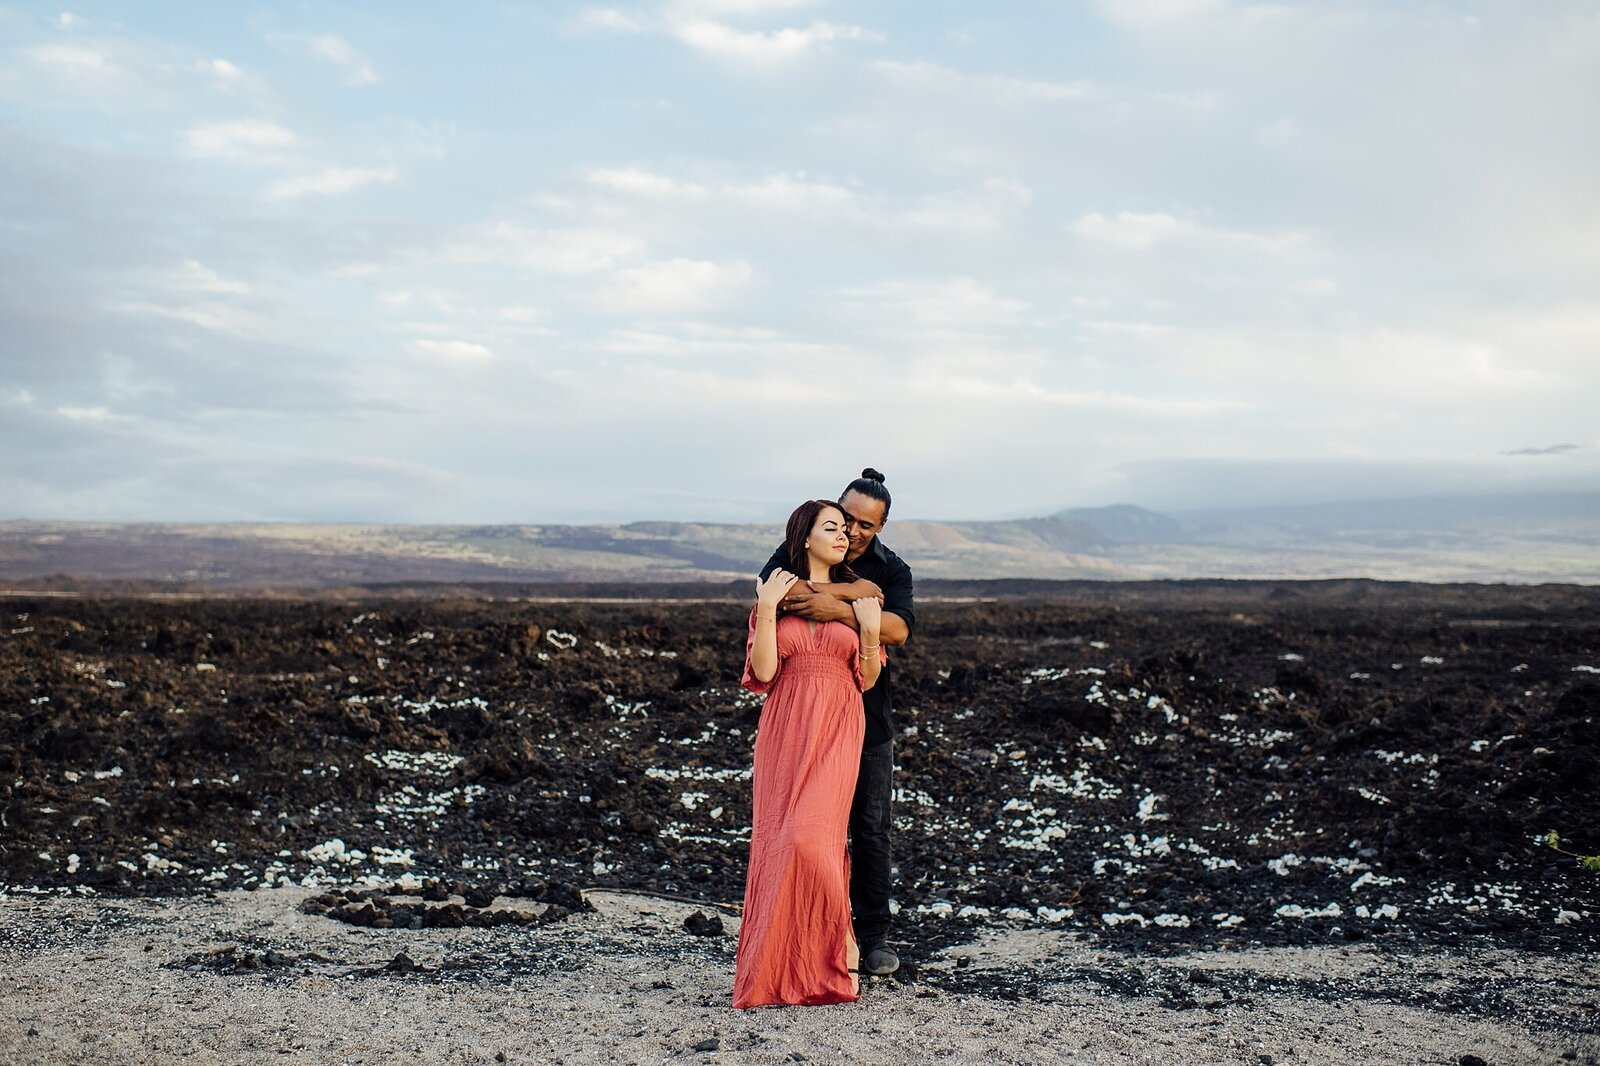 kona-hawaii-engagement-photographer-10